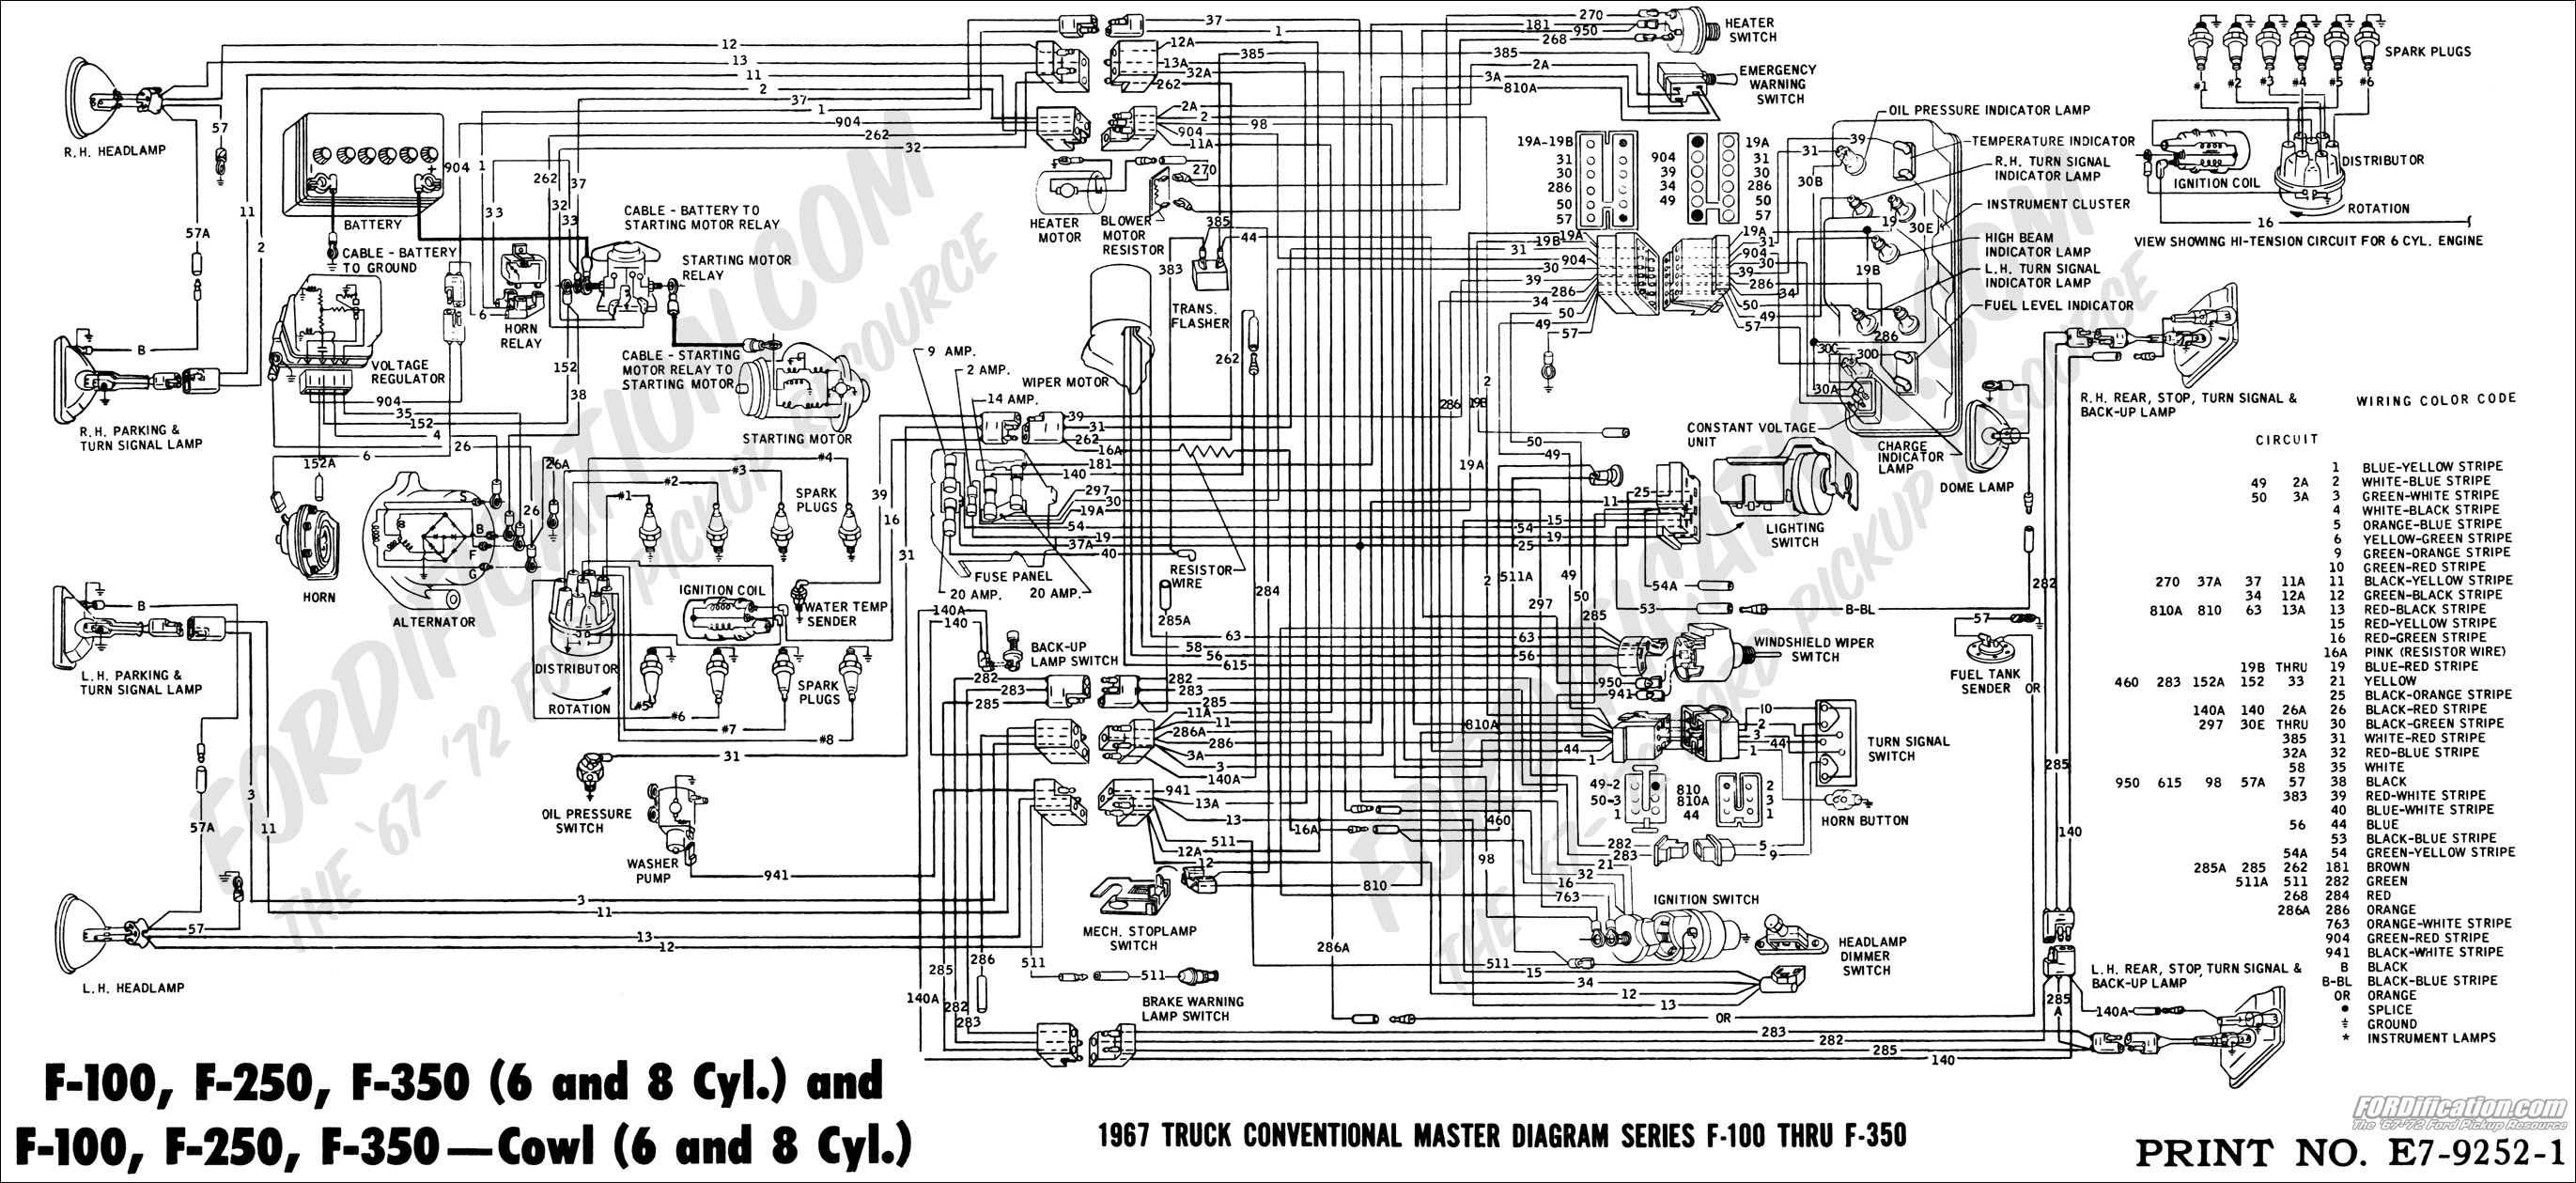 1973 ford f100 wiring harness diagram wiring diagram1967 ford truck wiring data wiring diagram updateford truck wiring wiring diagram automotive 1966 ford truck